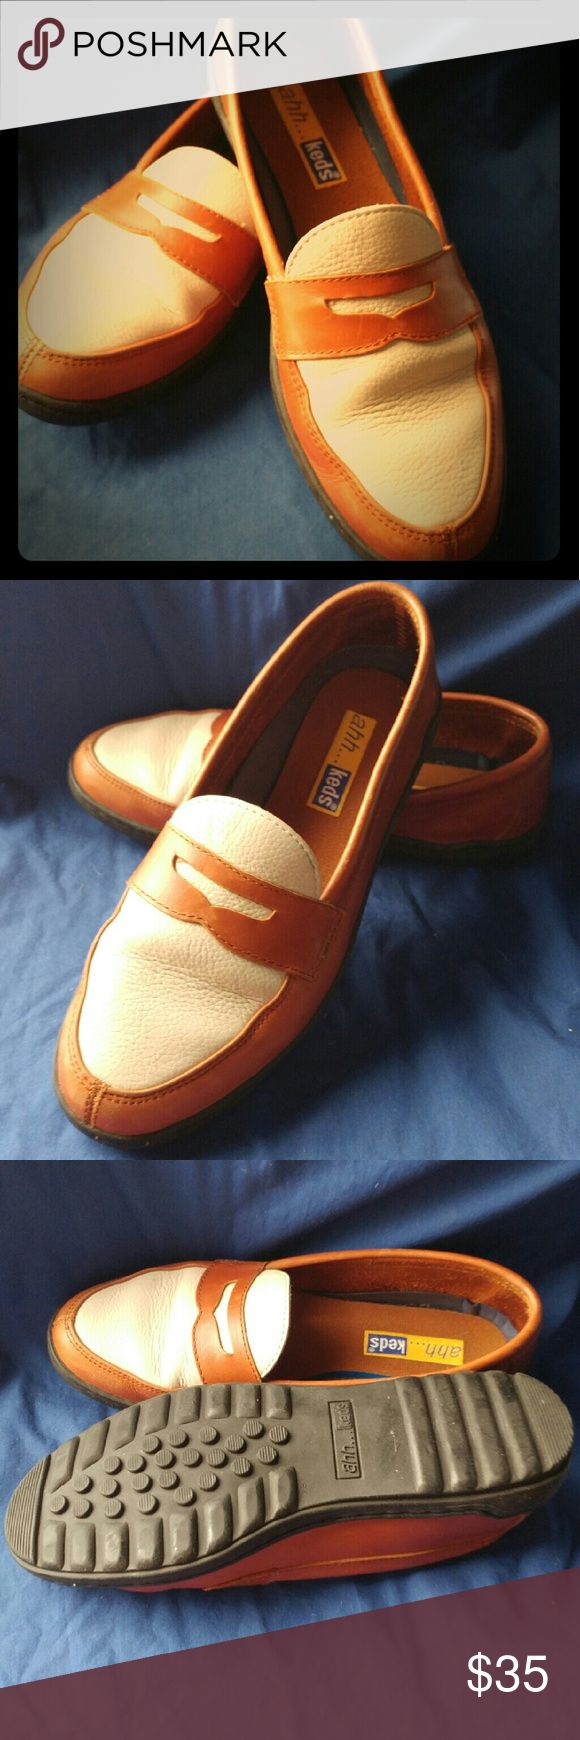 Keds ahh leather loafer Leather keds. Tan and beige. Keds Shoes Flats & Loafers